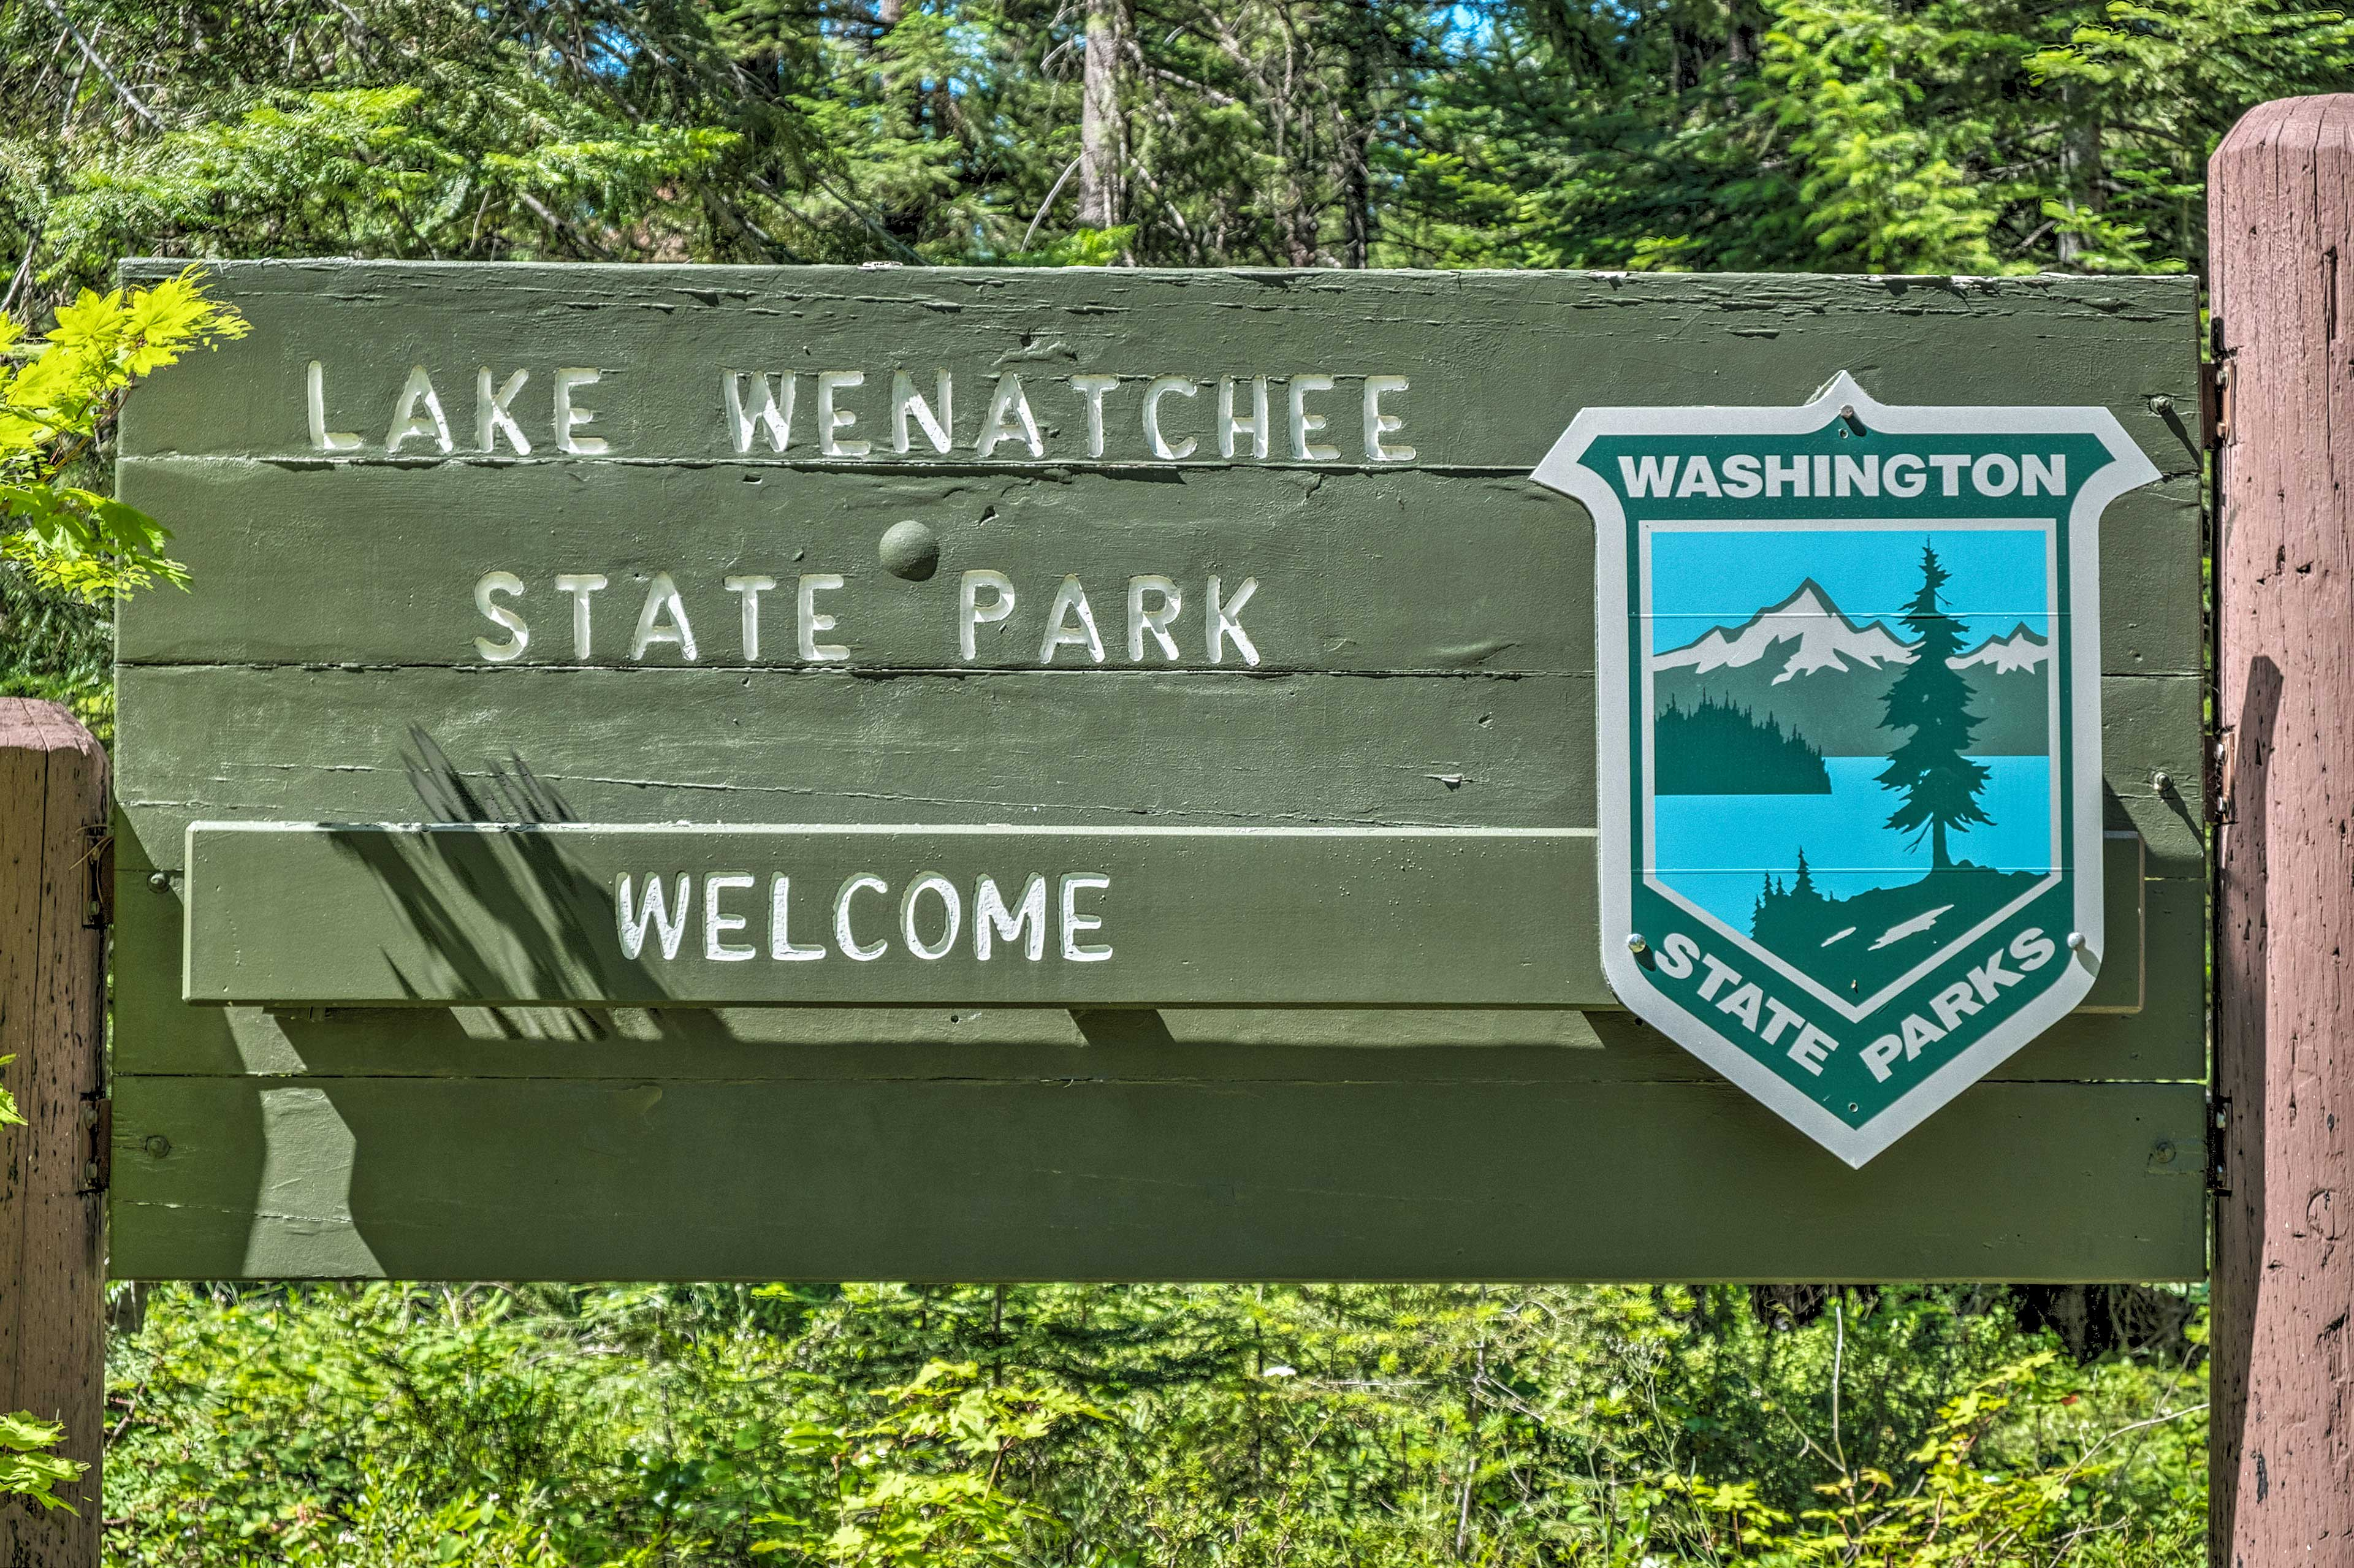 Easily access Lake Wenatchee 2 miles north!